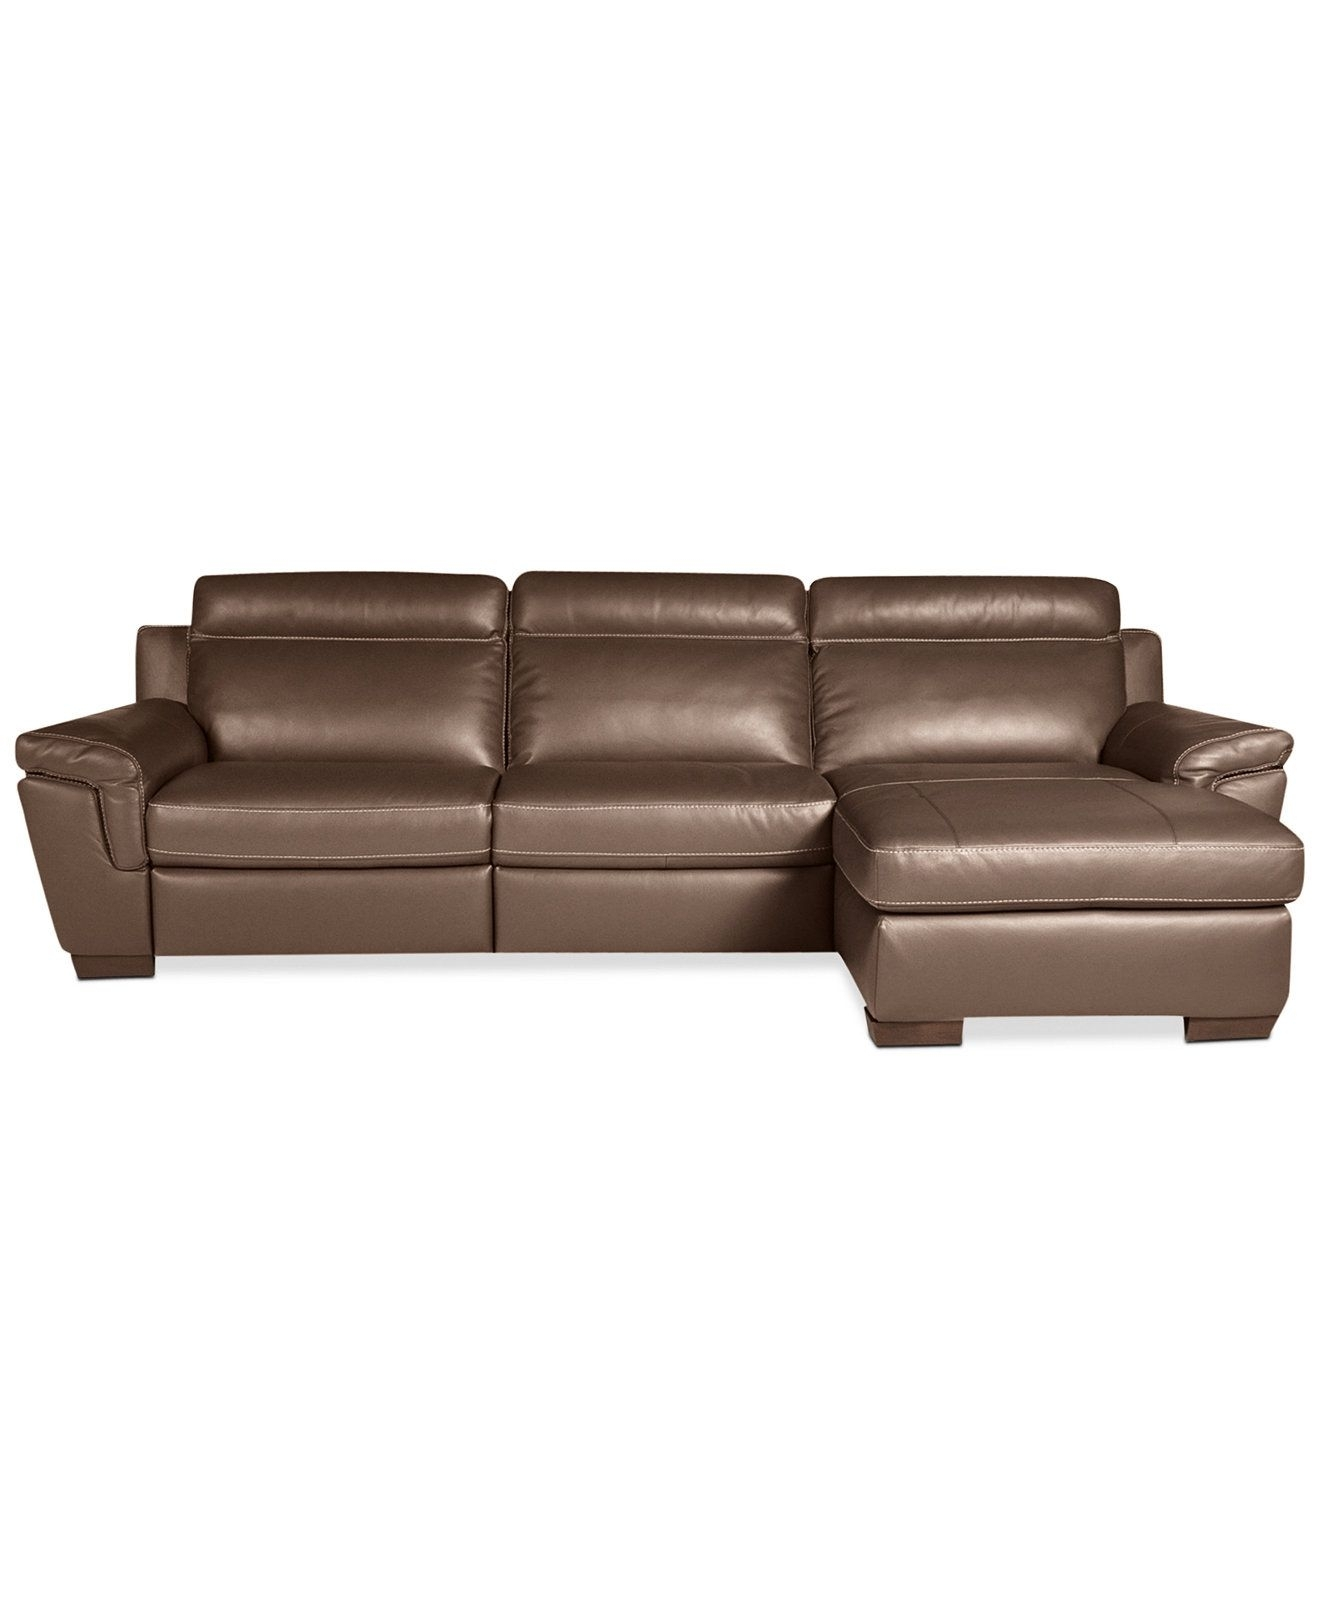 Julius 3 Piece Leather Power Motion Chaise Sectional Sofa (Power Regarding Declan 3 Piece Power Reclining Sectionals With Right Facing Console Loveseat (Image 12 of 25)